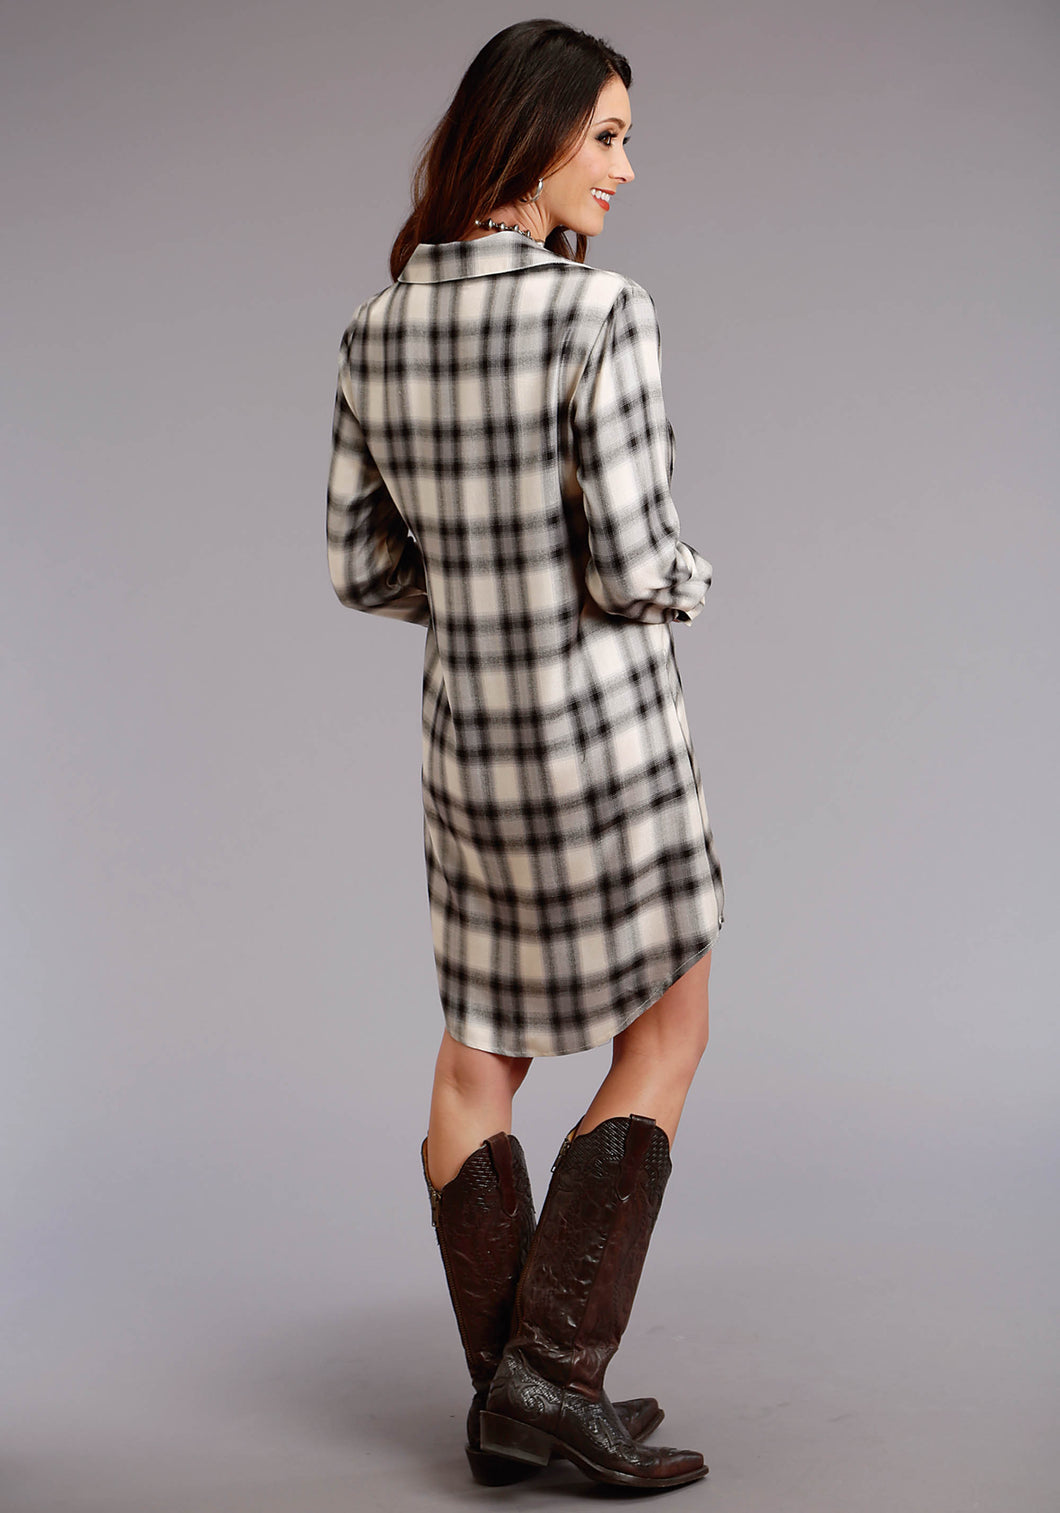 Stetson Ladies Collection- Fall Iii Stetson Womens Long Sleeve Dress 0586